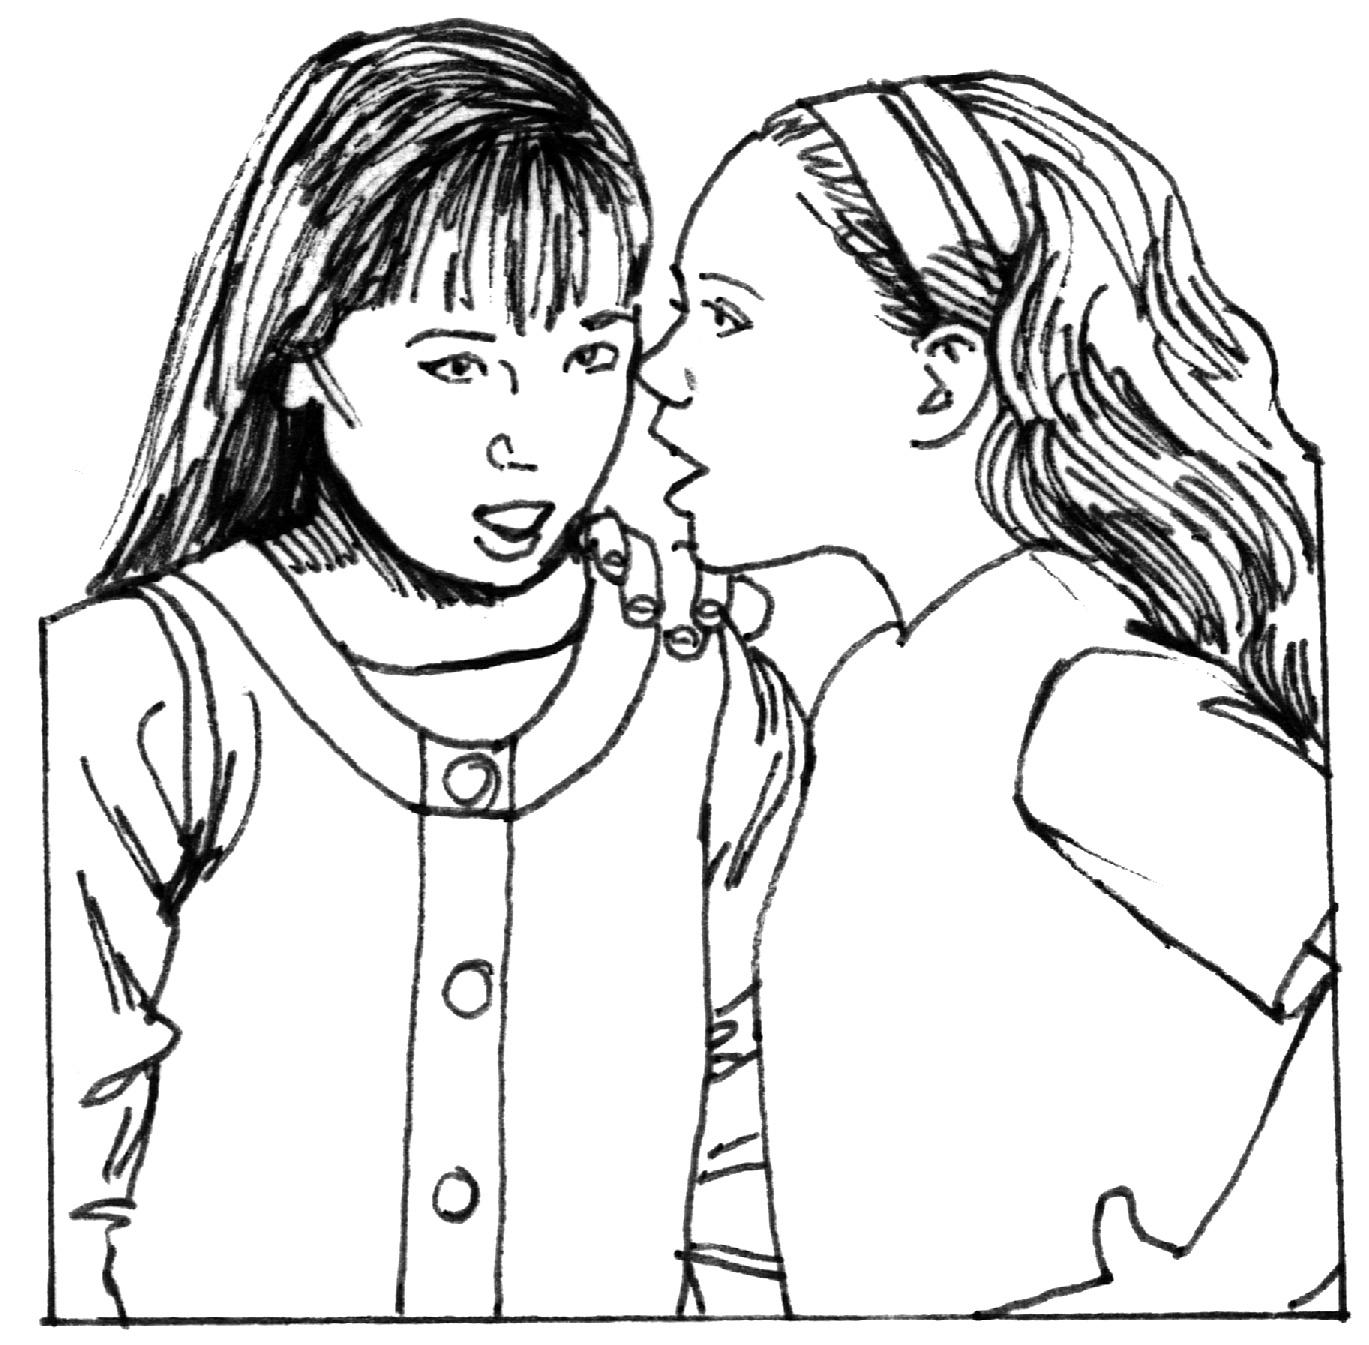 Whispering clipart black and white » Clipart Station.